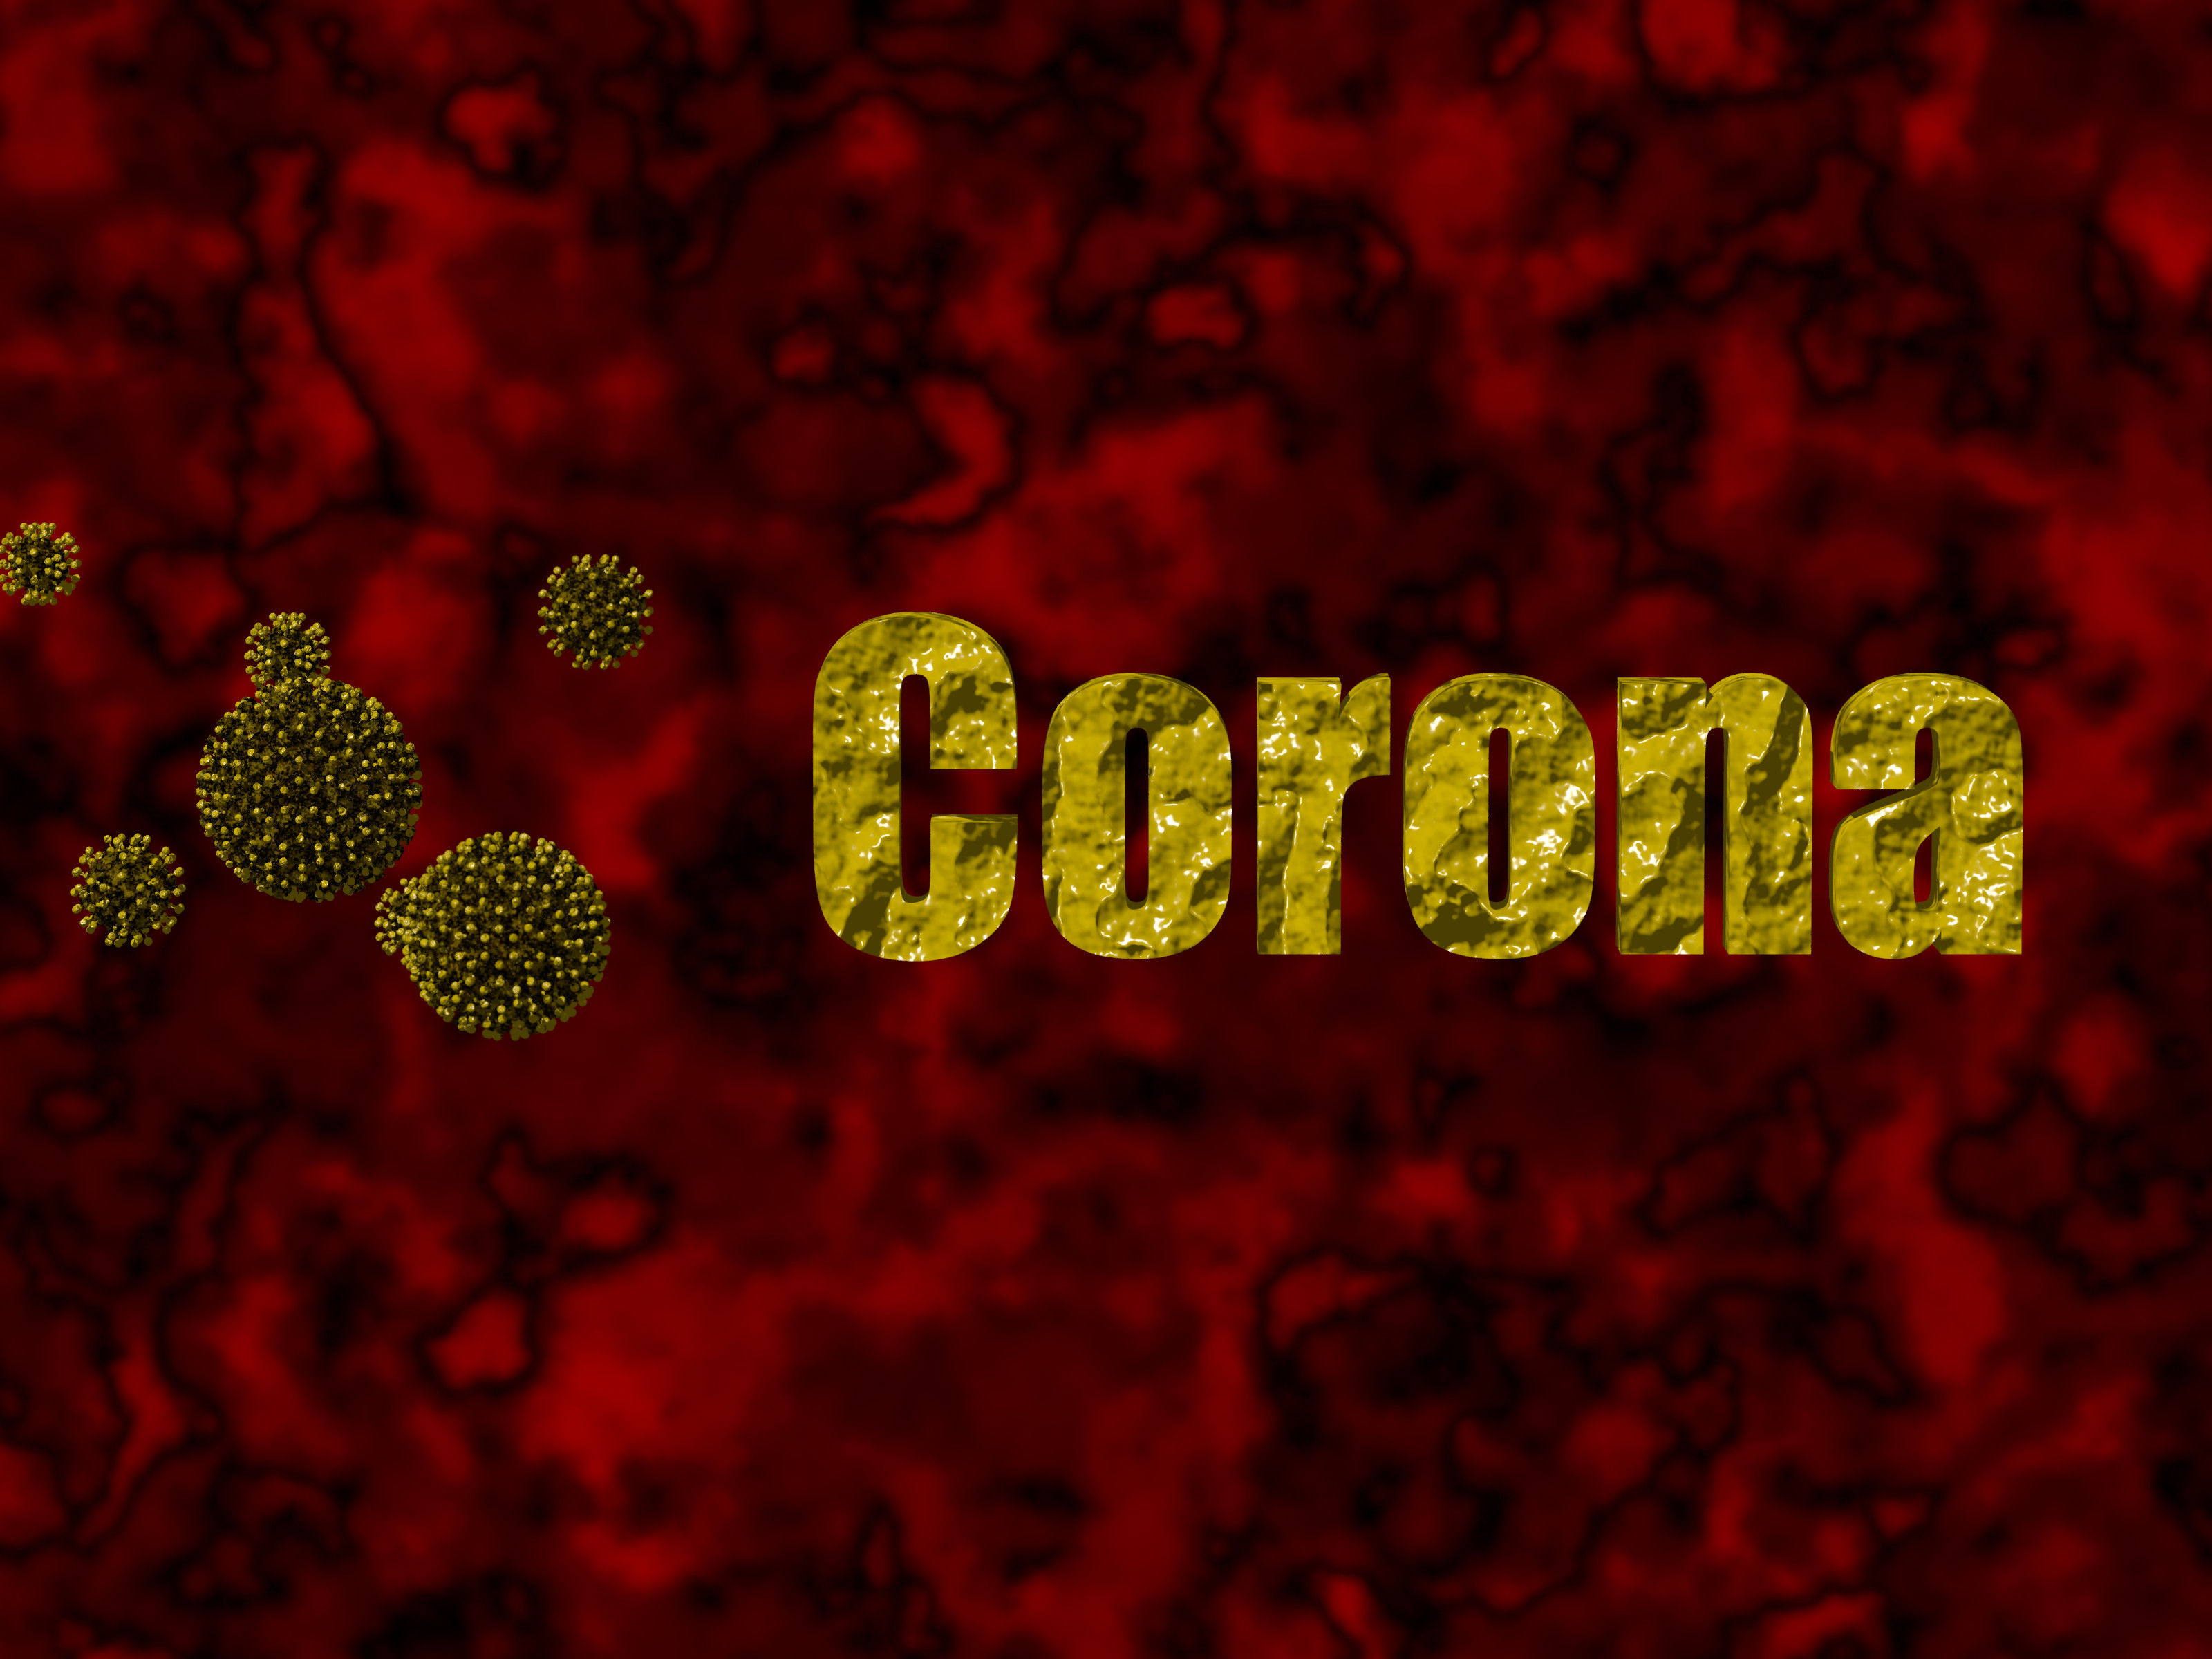 https www.pfarrbriefservice.de sites default files atoms image corona band schrift by juergen koehn pfarrbriefservice